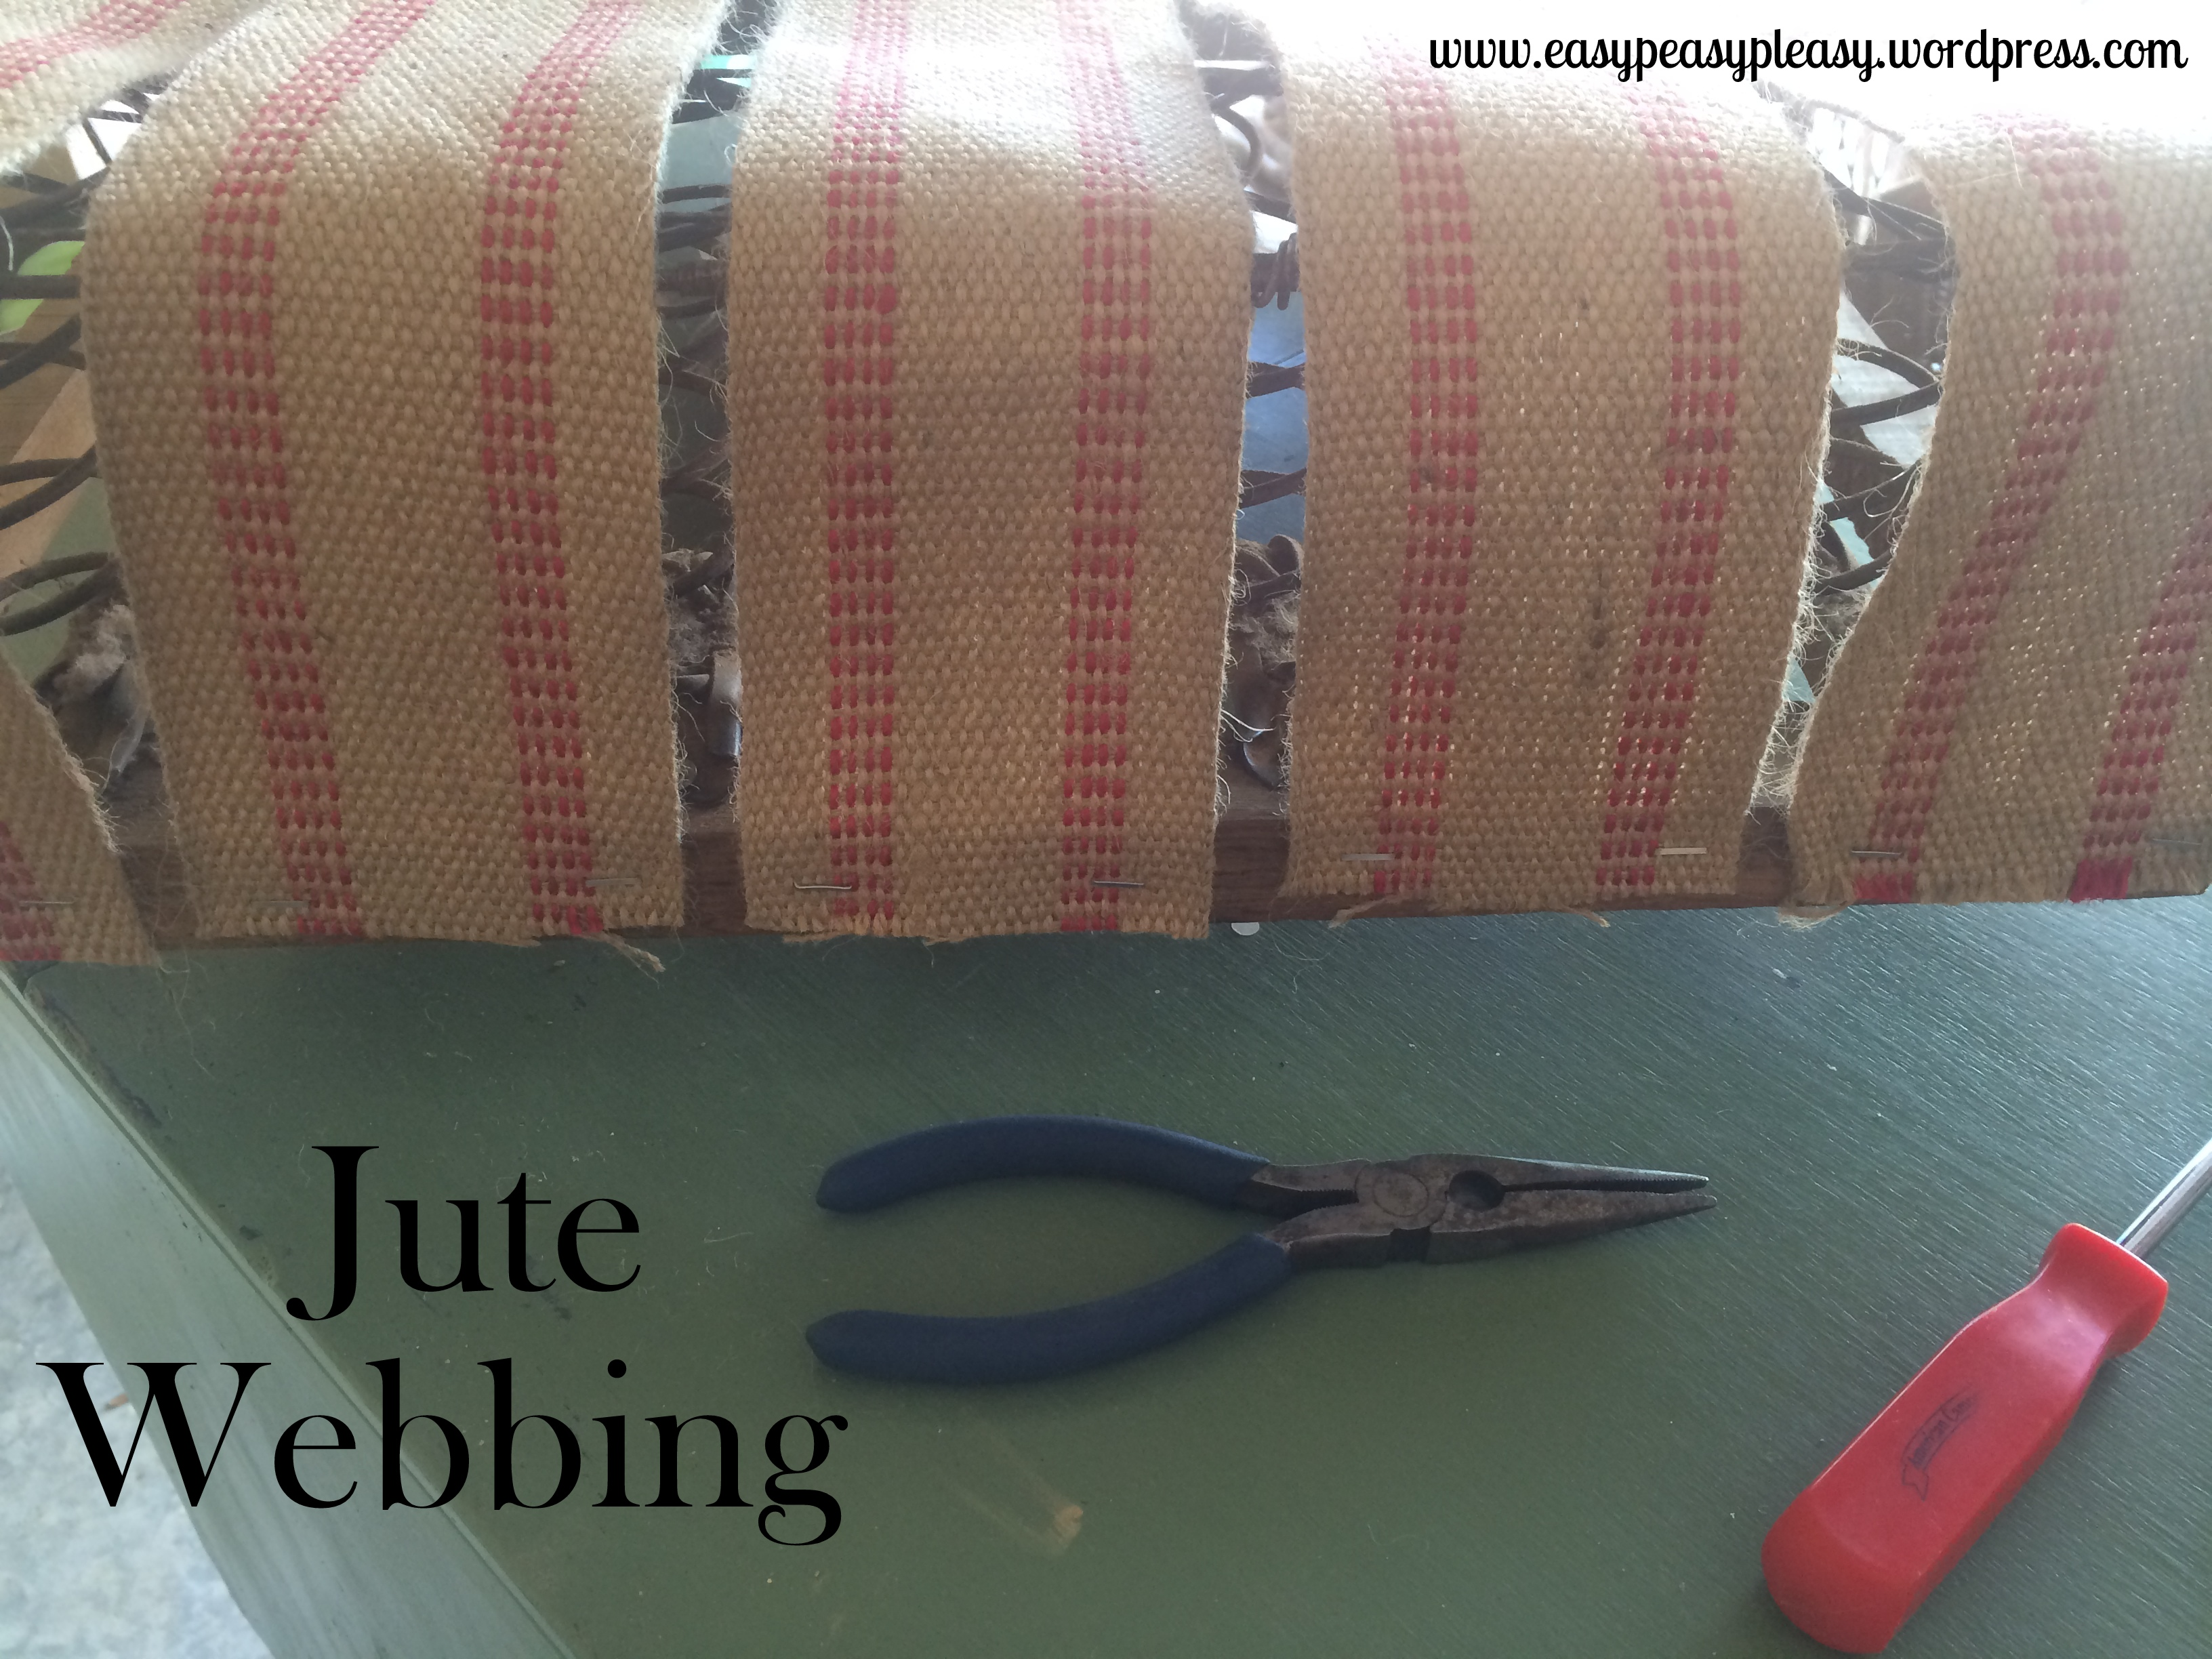 Restoring a spring loaded seat with jute webbing